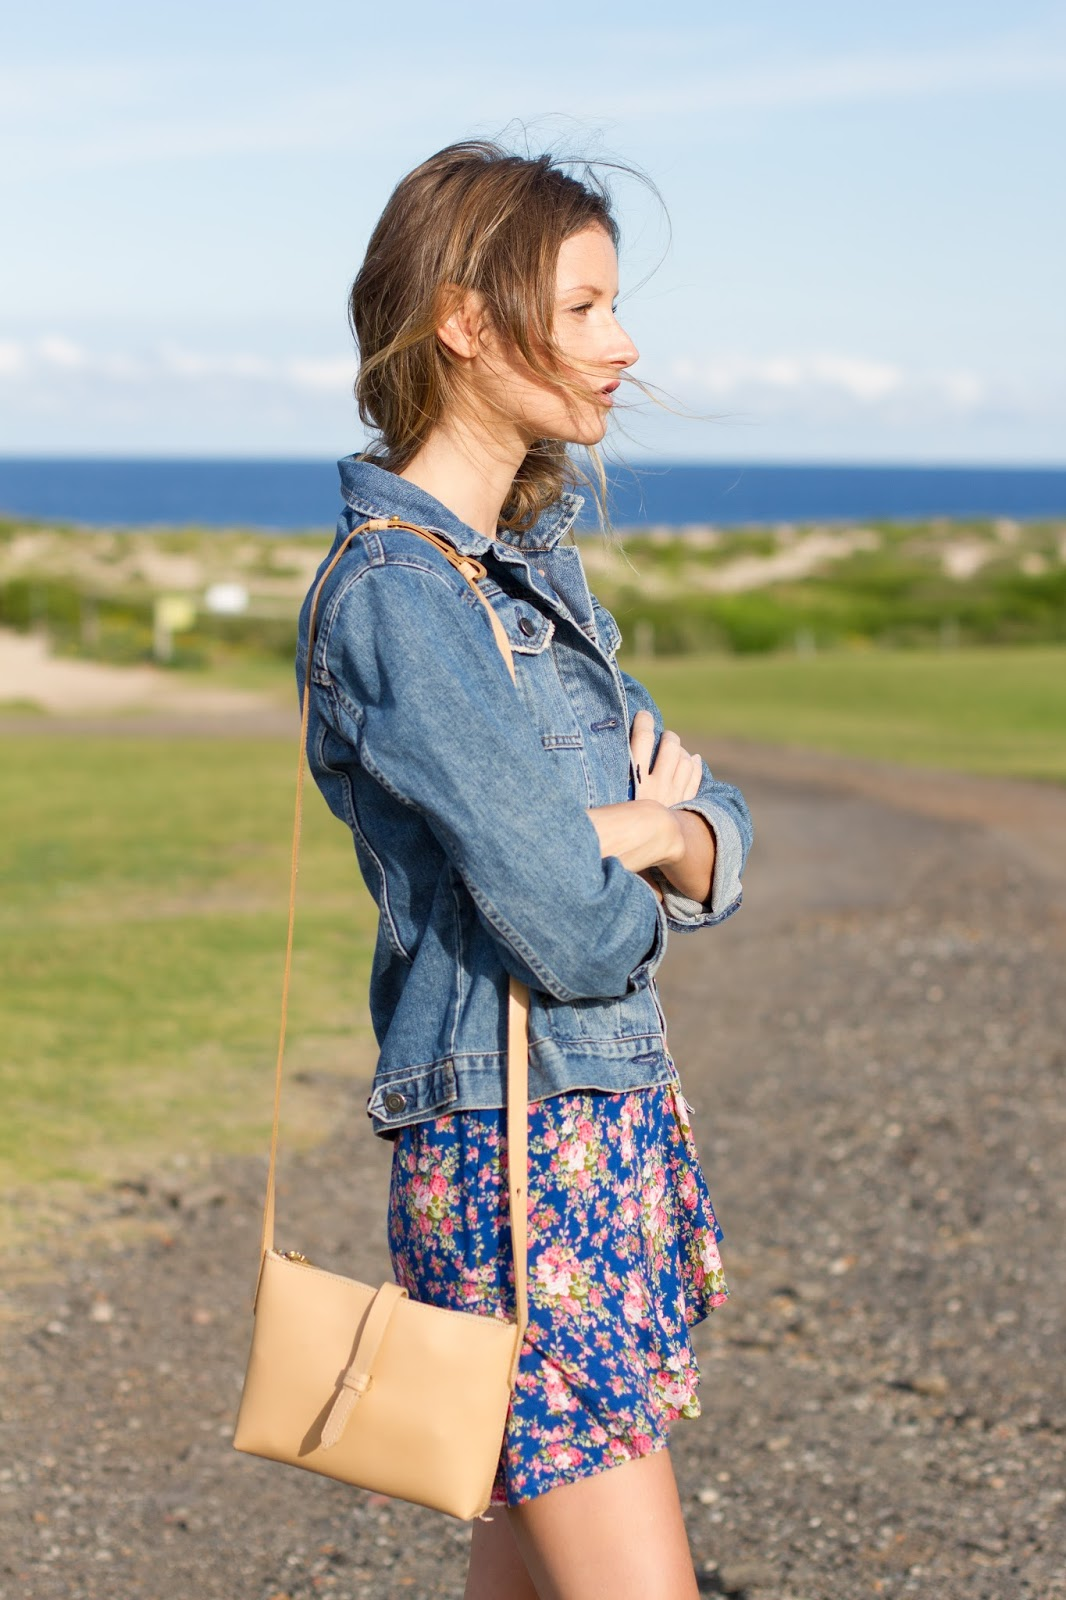 fashion blogger and designer, Alison Hutchinson, is wearing a KAYVALYA blue floral wrap dress, Topshop denim jacket, and Witchery nude suede ankle boots